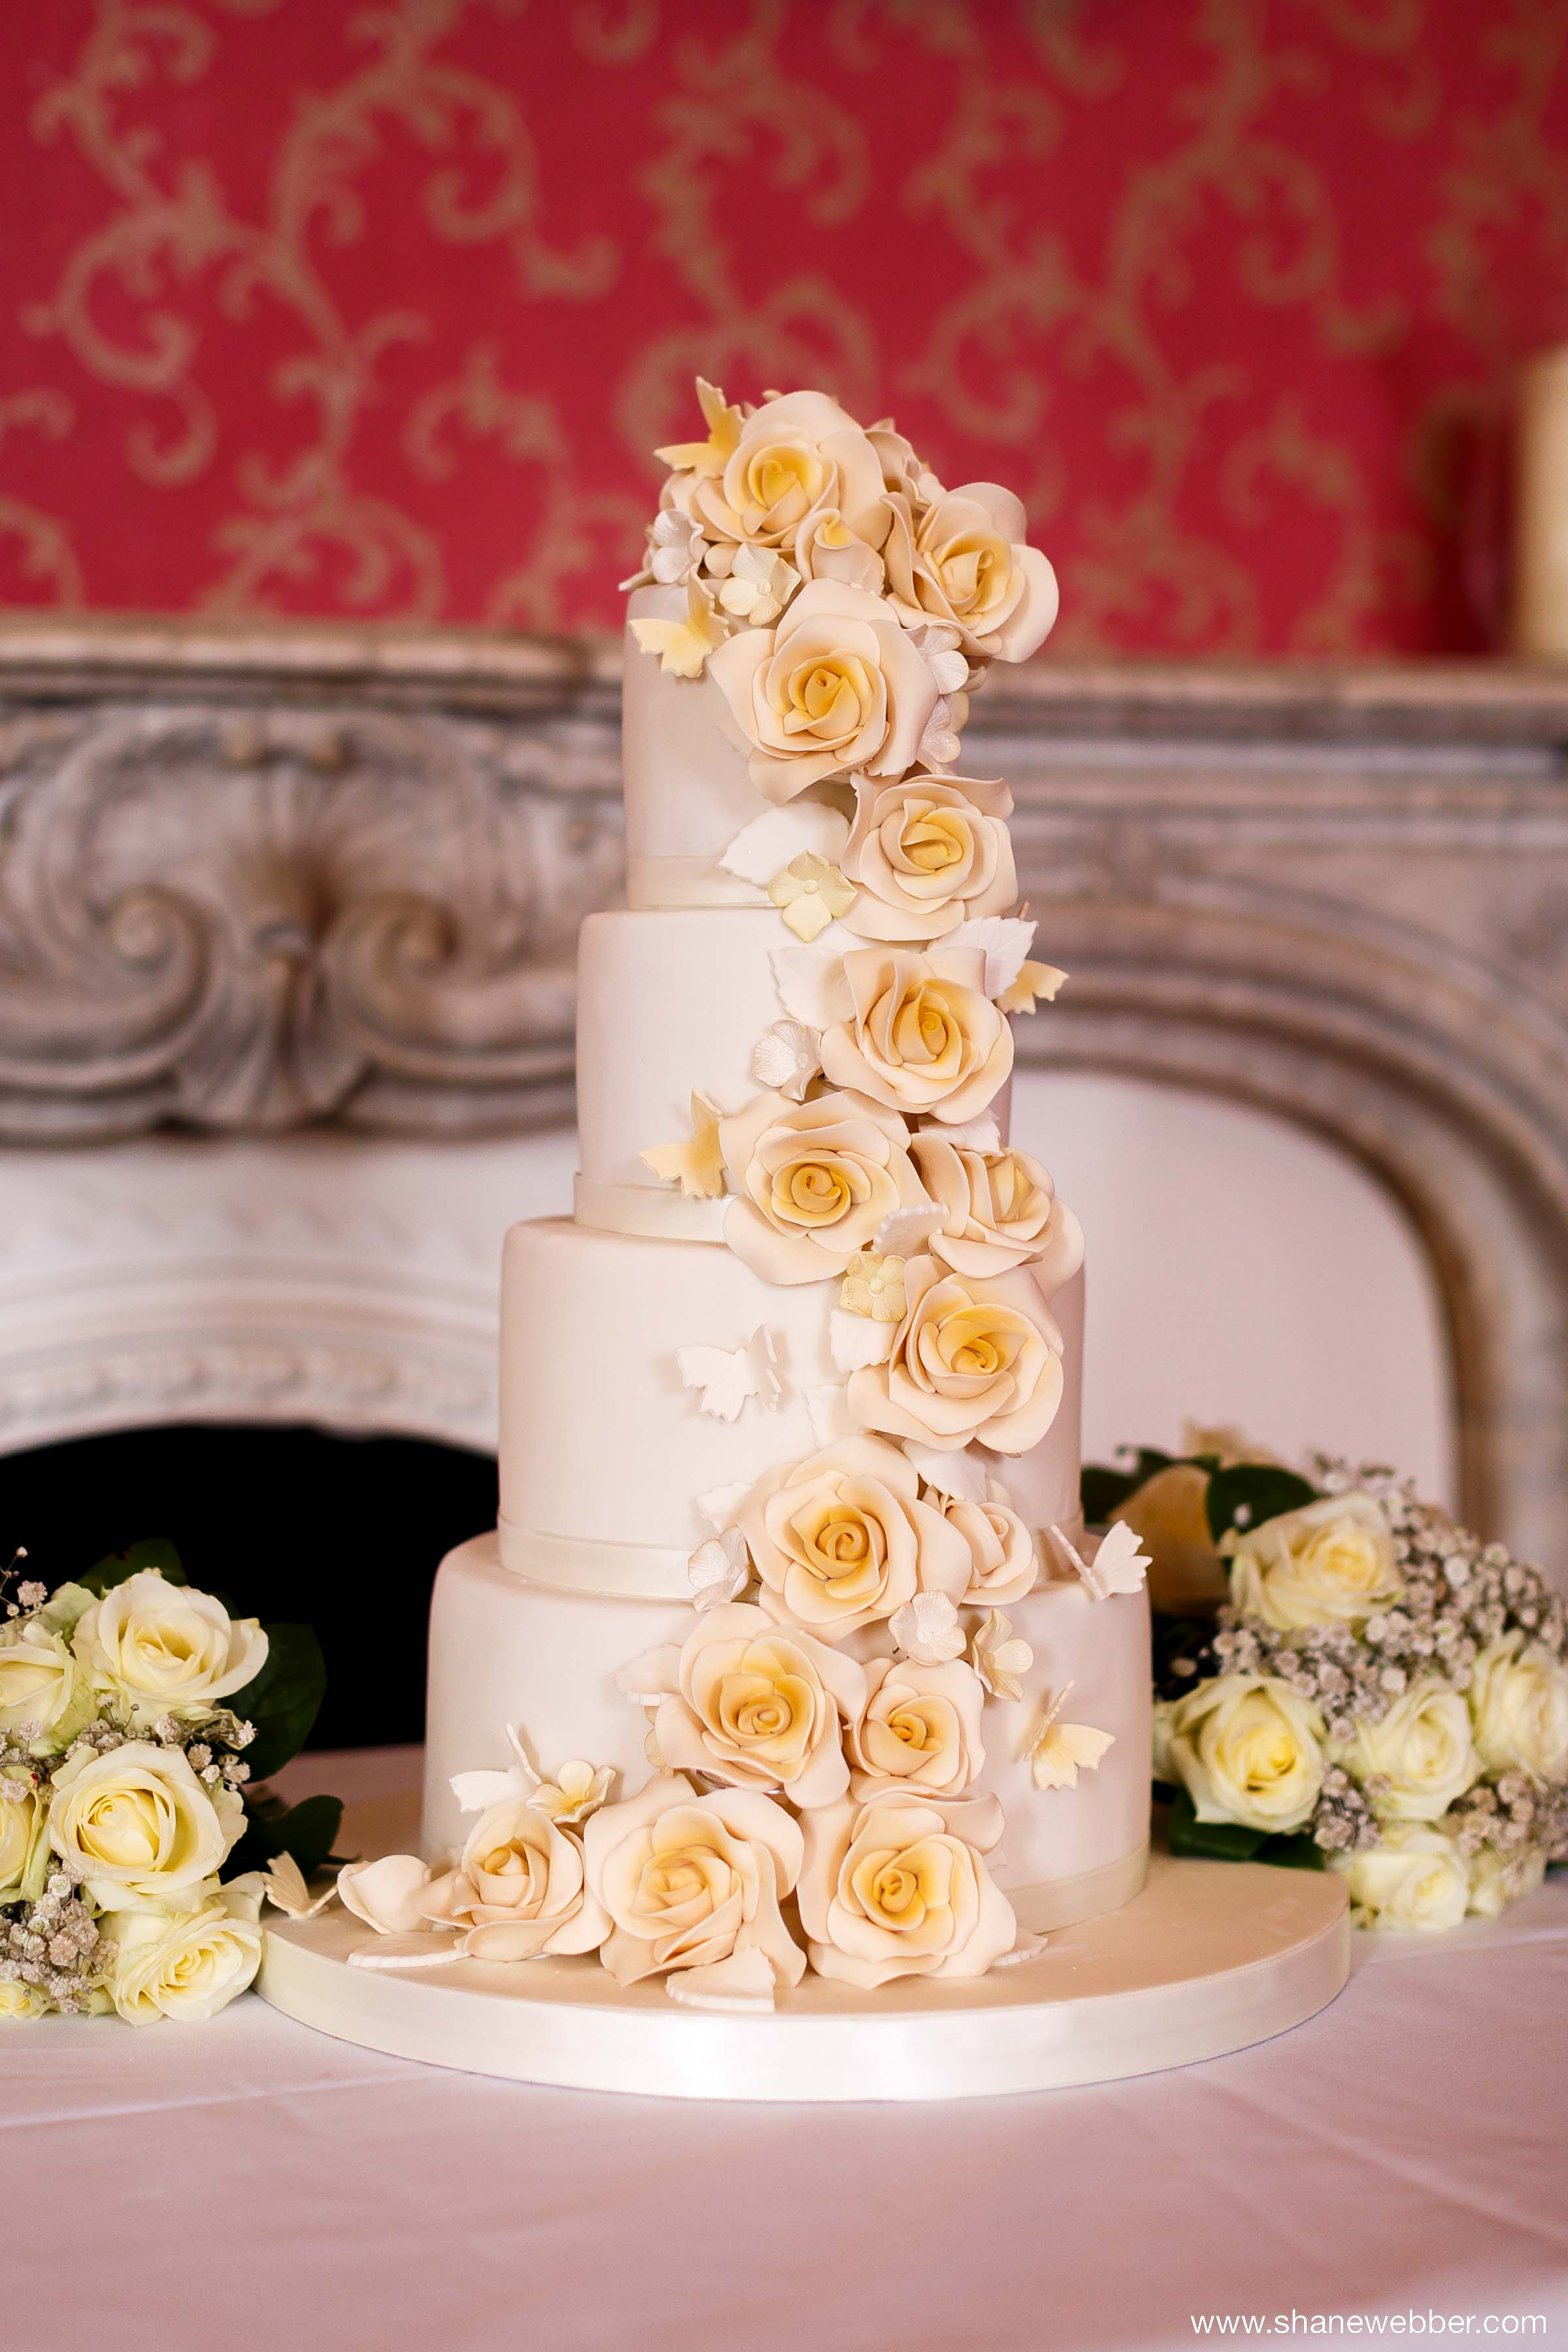 Four tiered wedding cake with cascading edible flowers